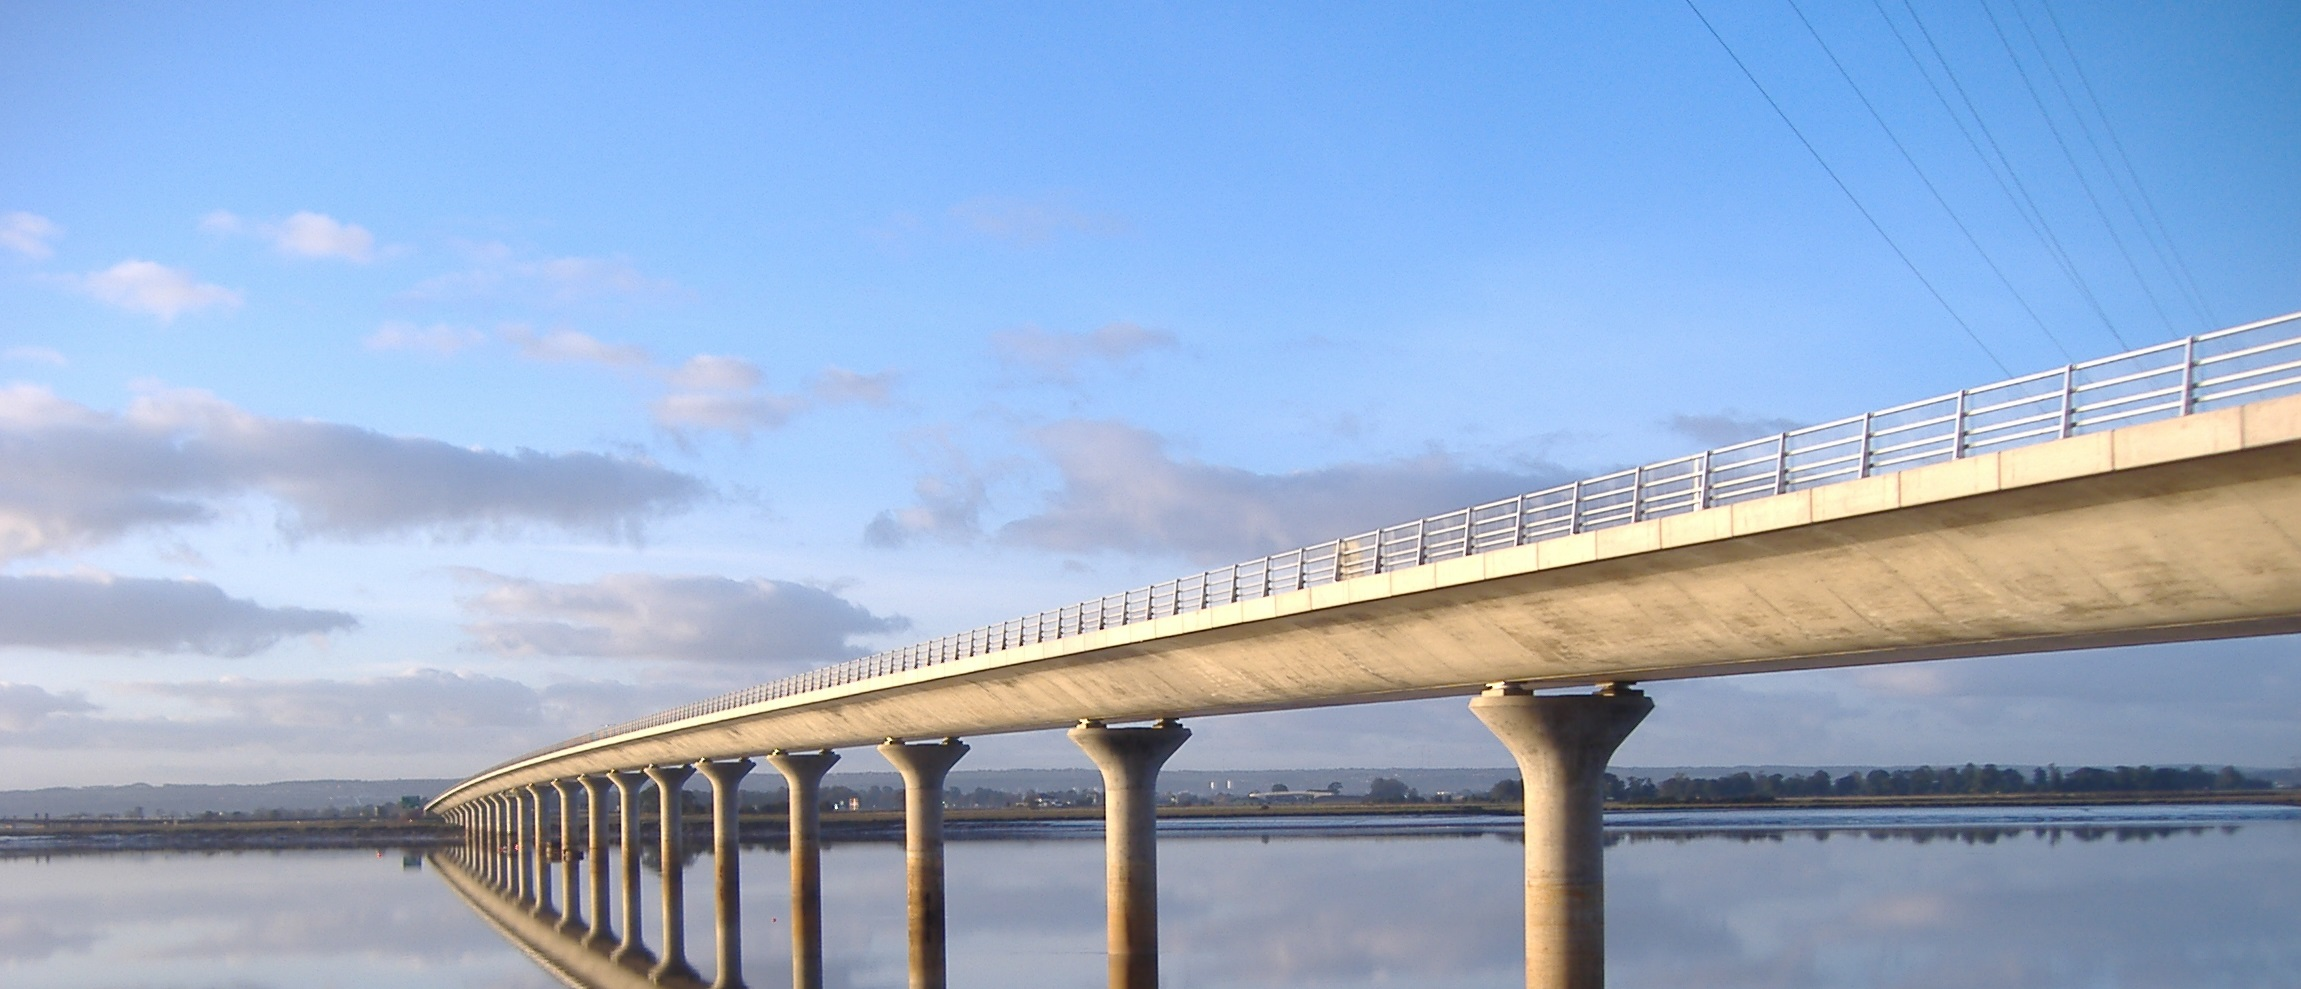 Achieve sustainable infrastructure with the CEEQUAL sustainability assessment and sustainability rating scheme.